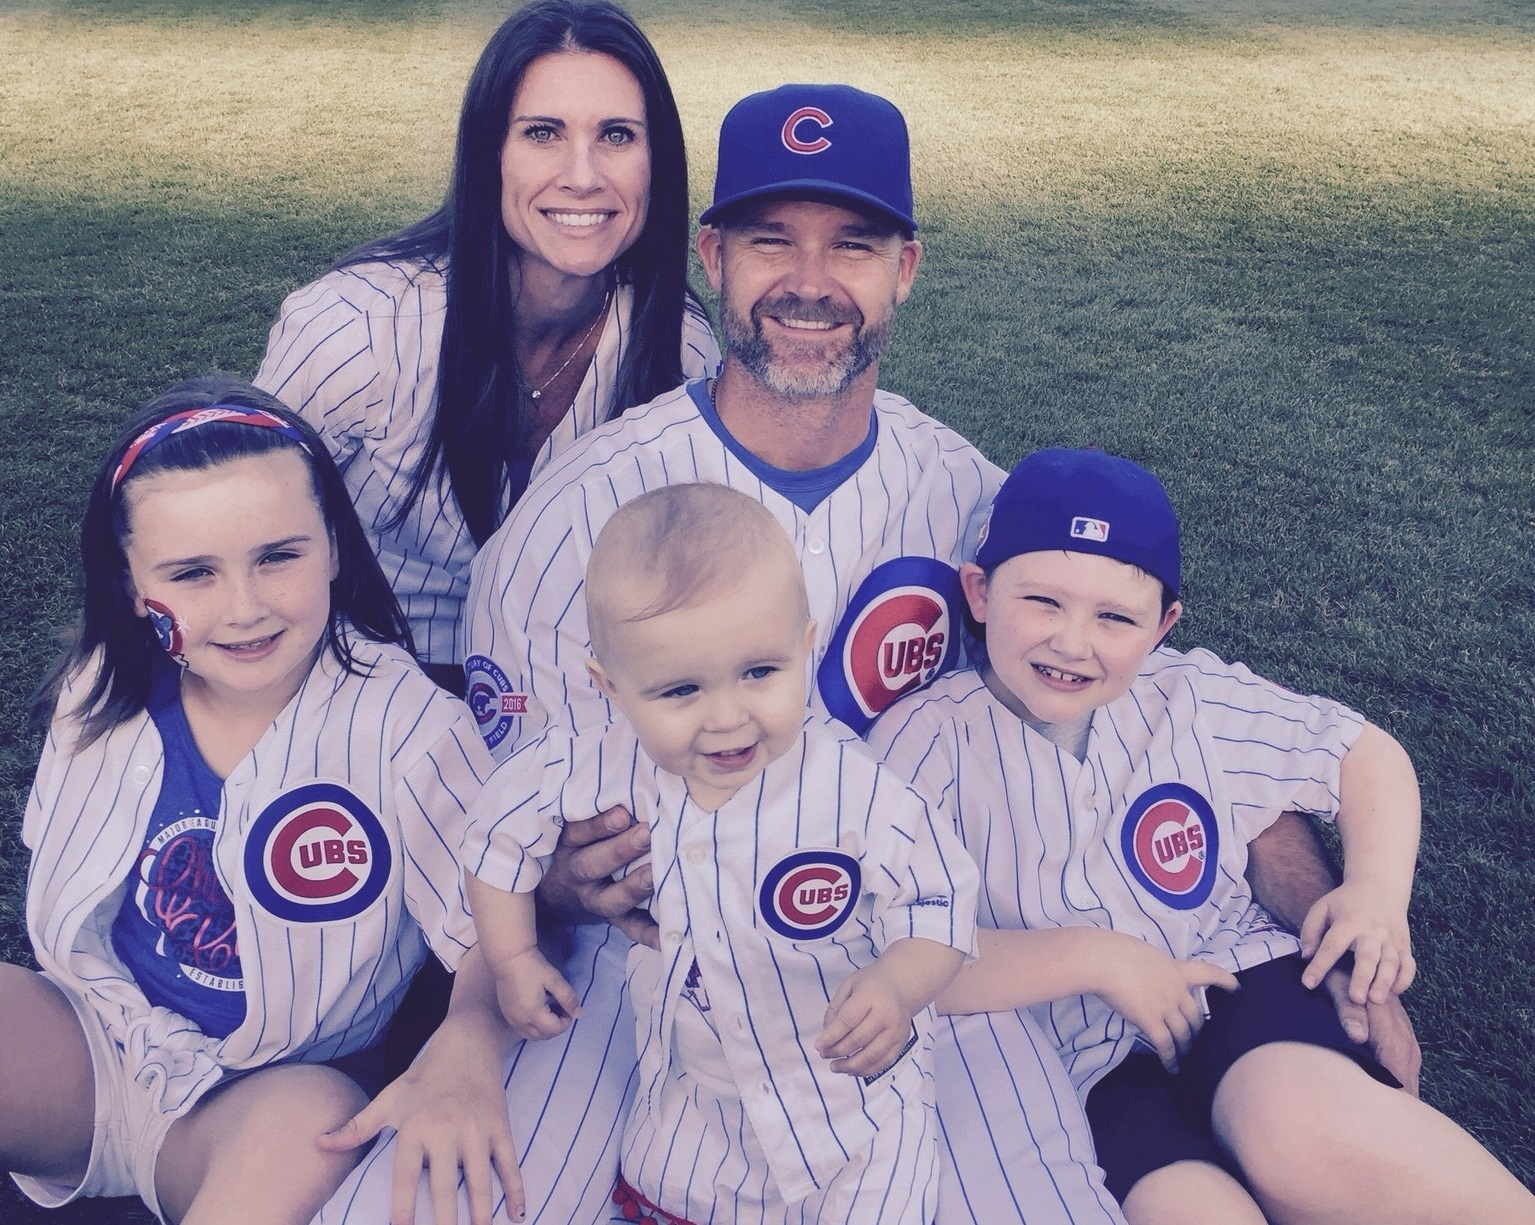 David Ross Family Photos, Wife, Children, Son, Age